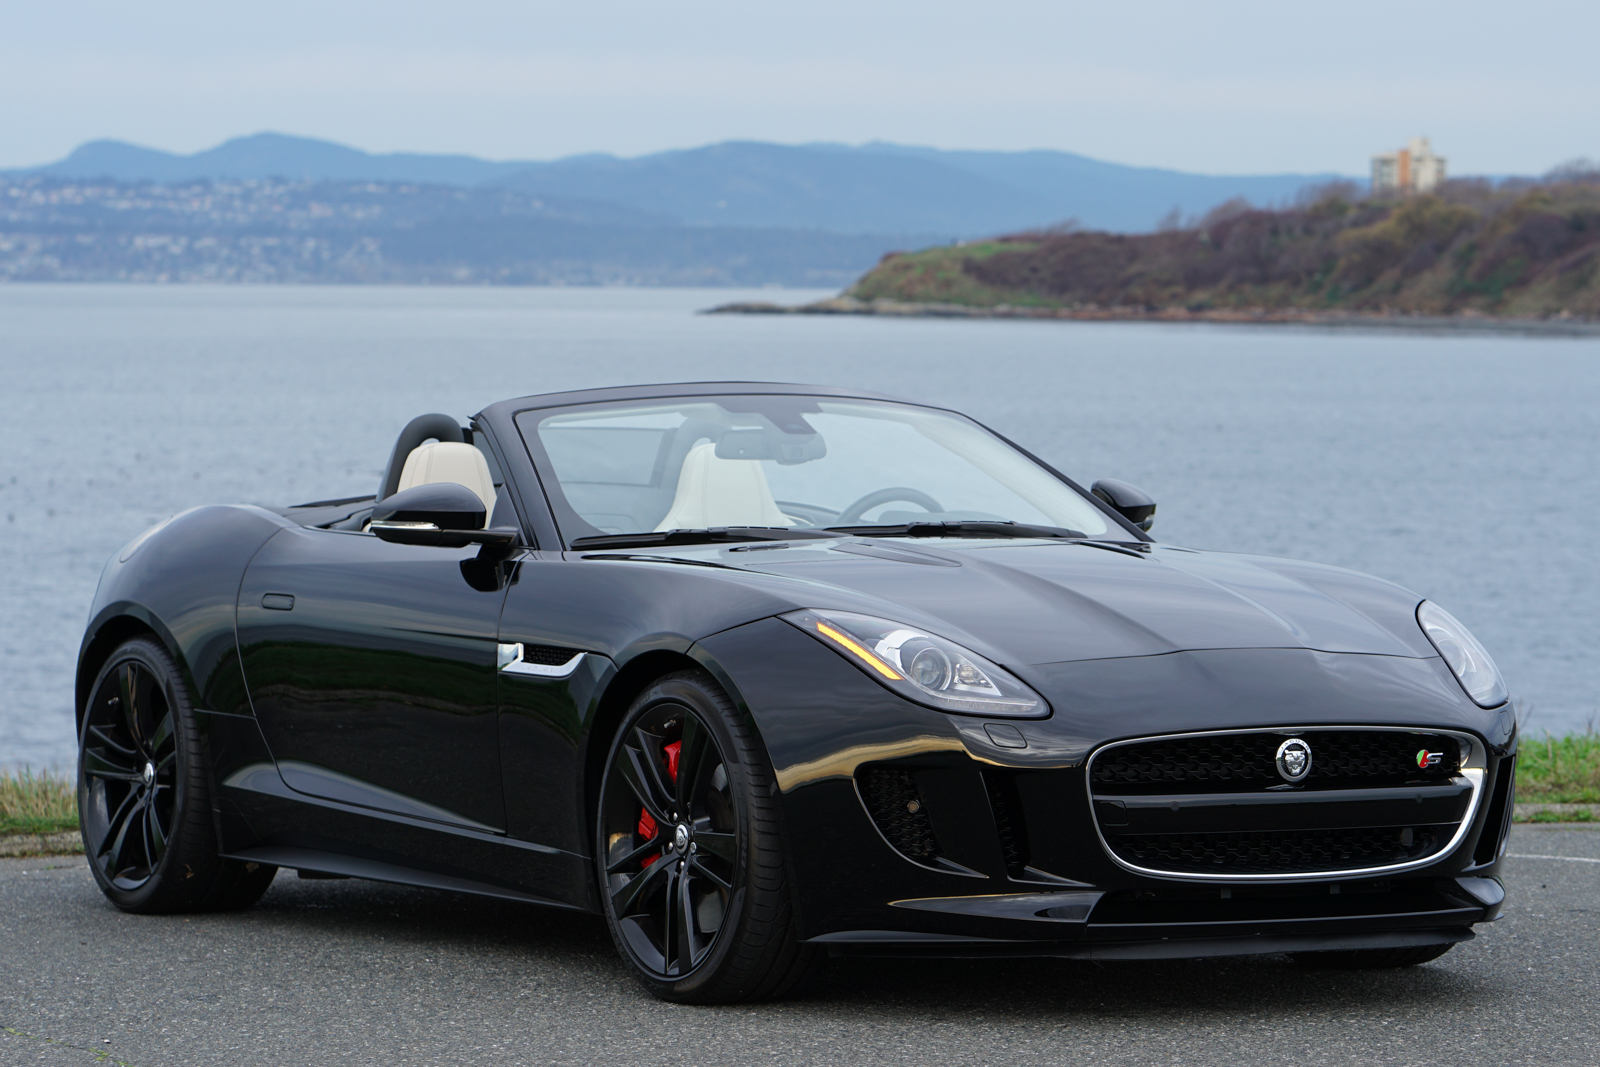 2014 jaguar f type v8 s convertible silver arrow cars ltd. Black Bedroom Furniture Sets. Home Design Ideas